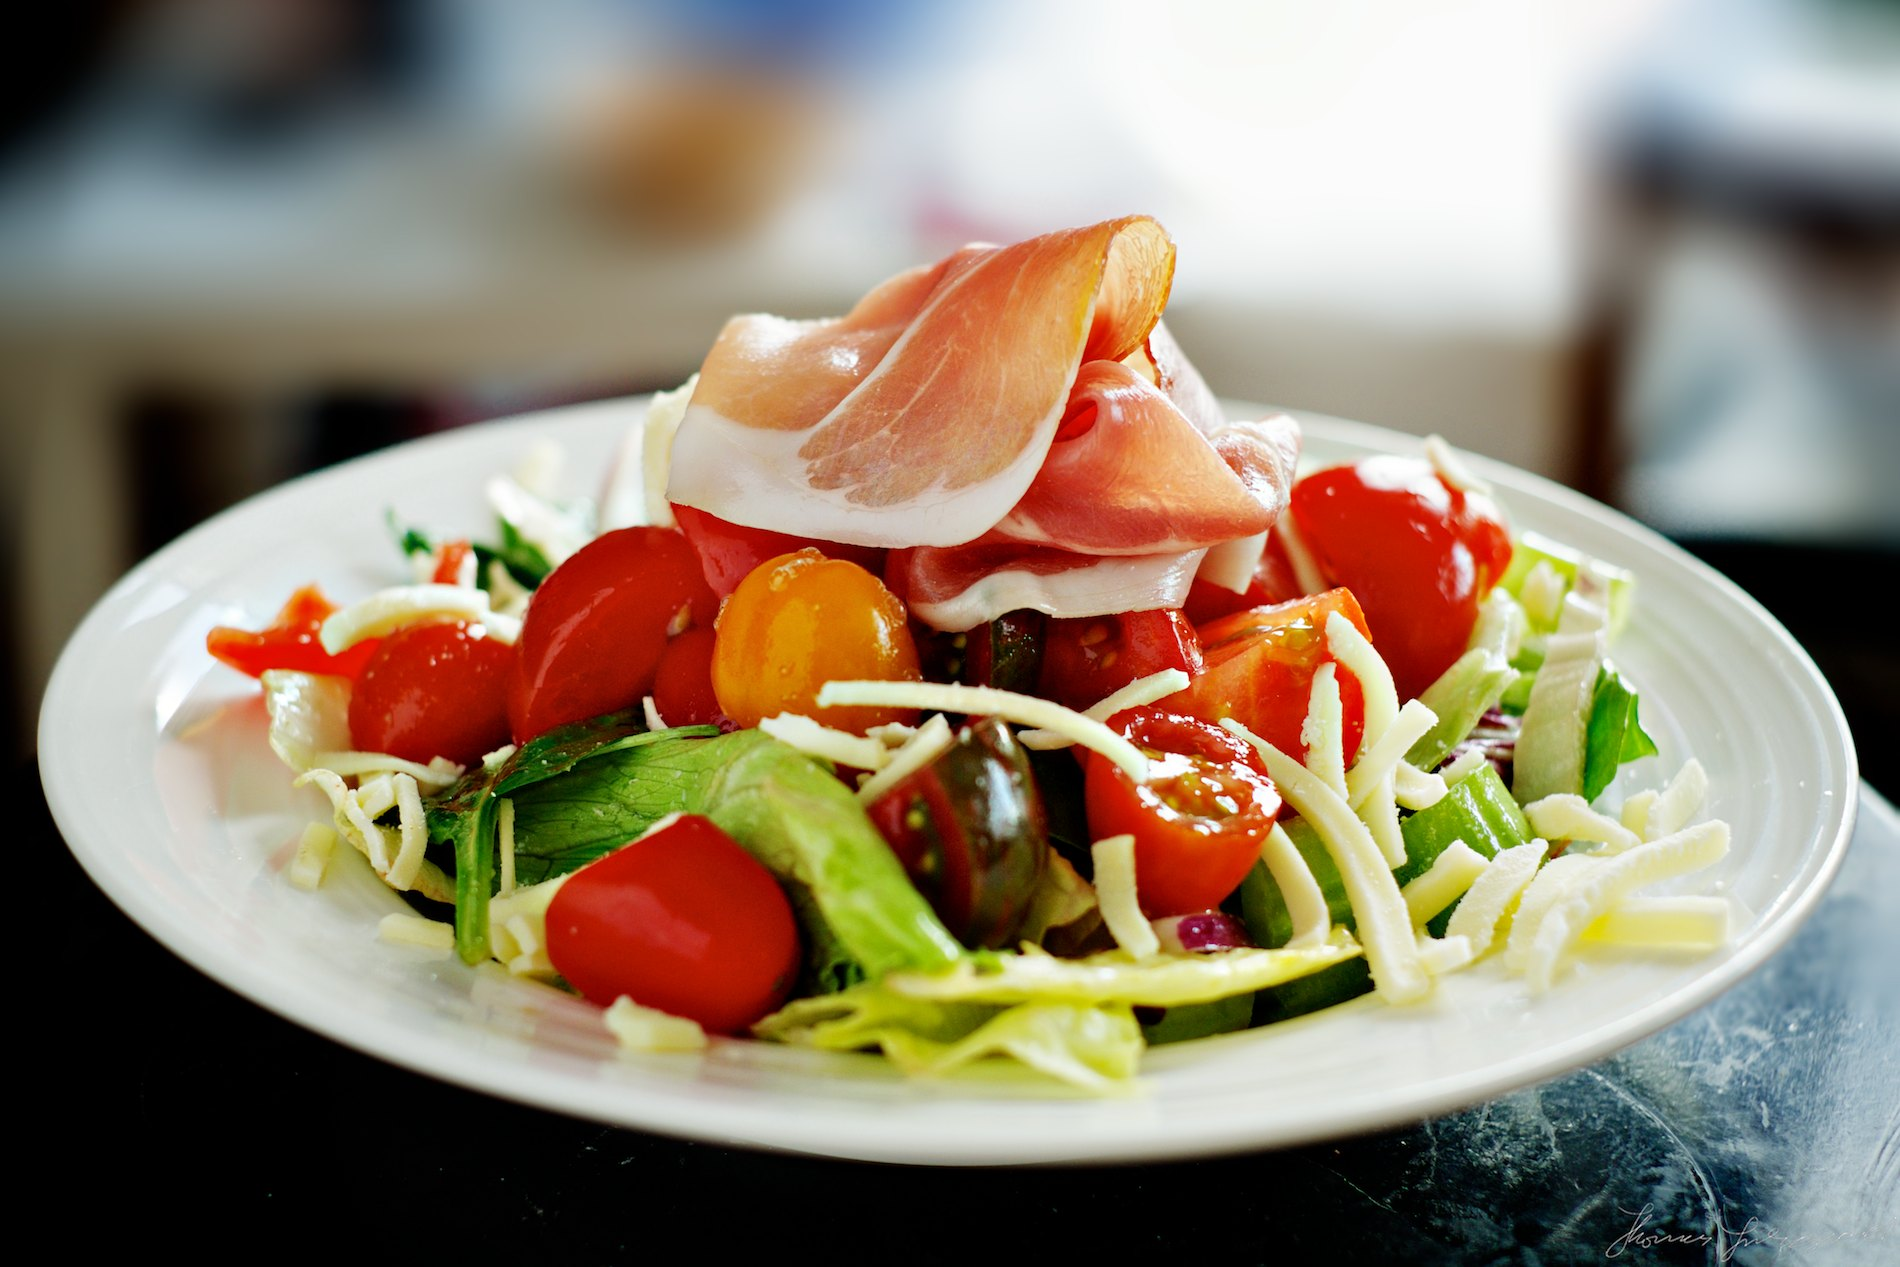 Parma ham and Tomato Salad